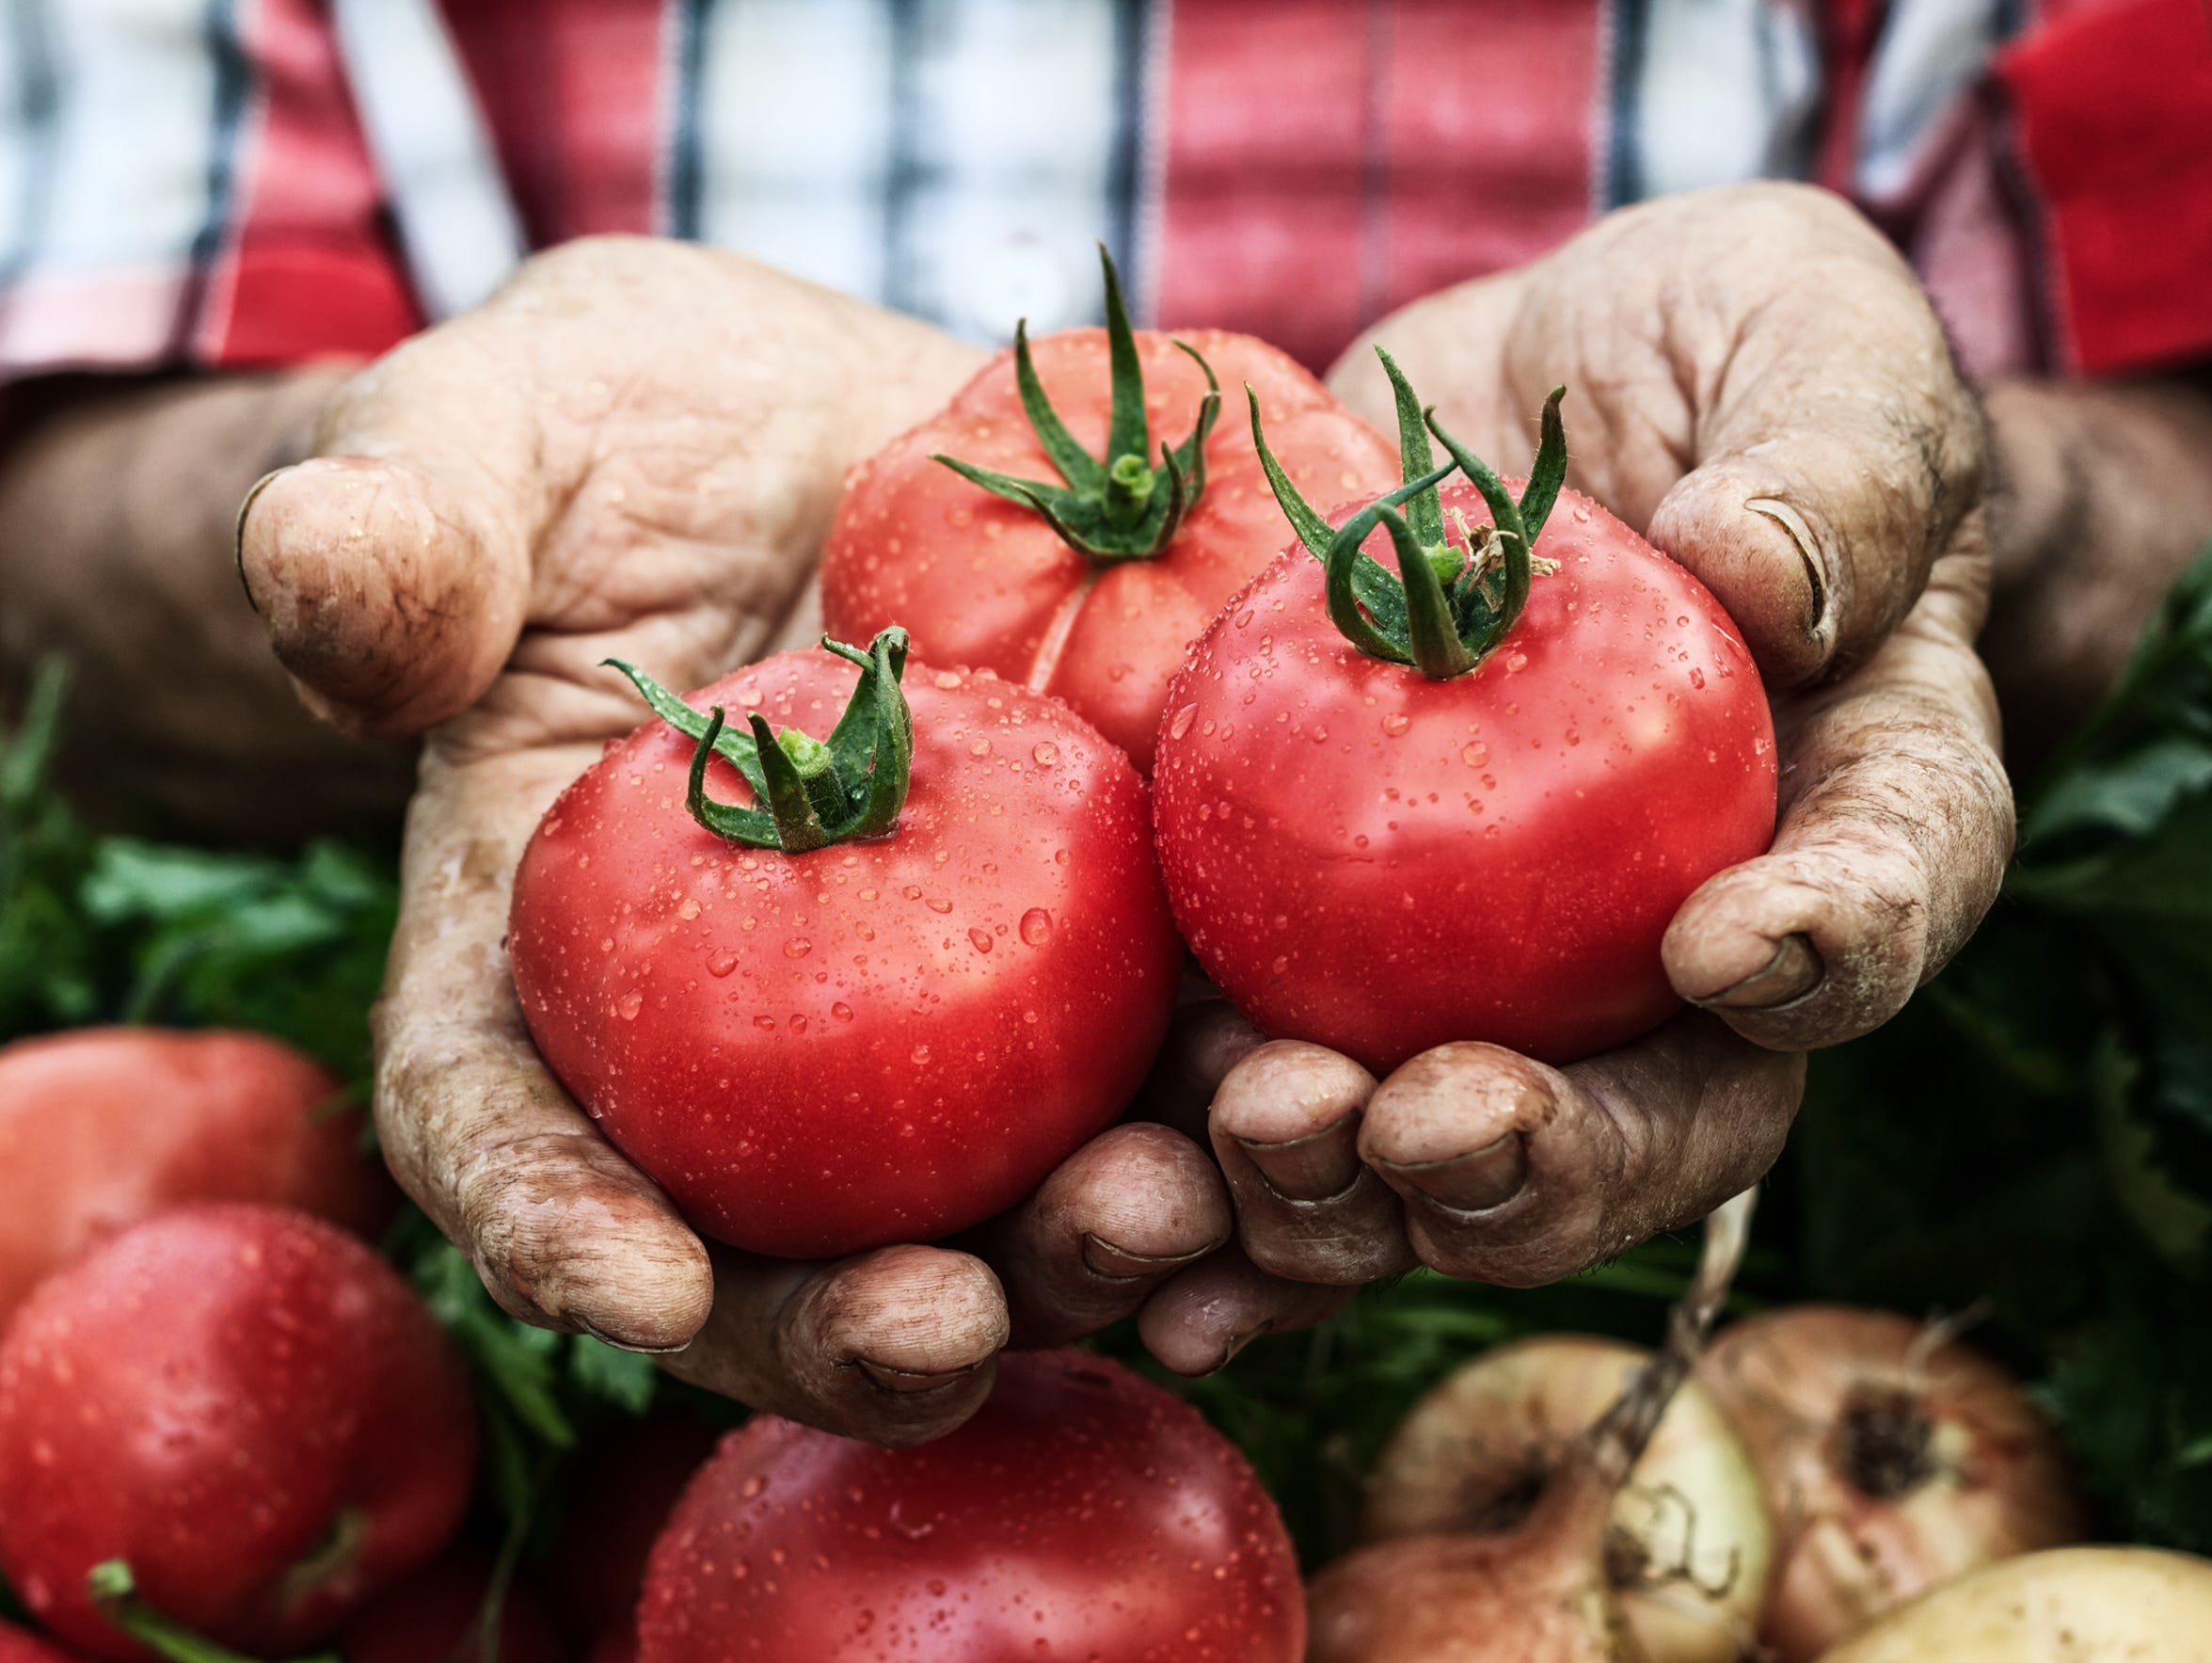 A tomato is a fruit as it develops from a flower and